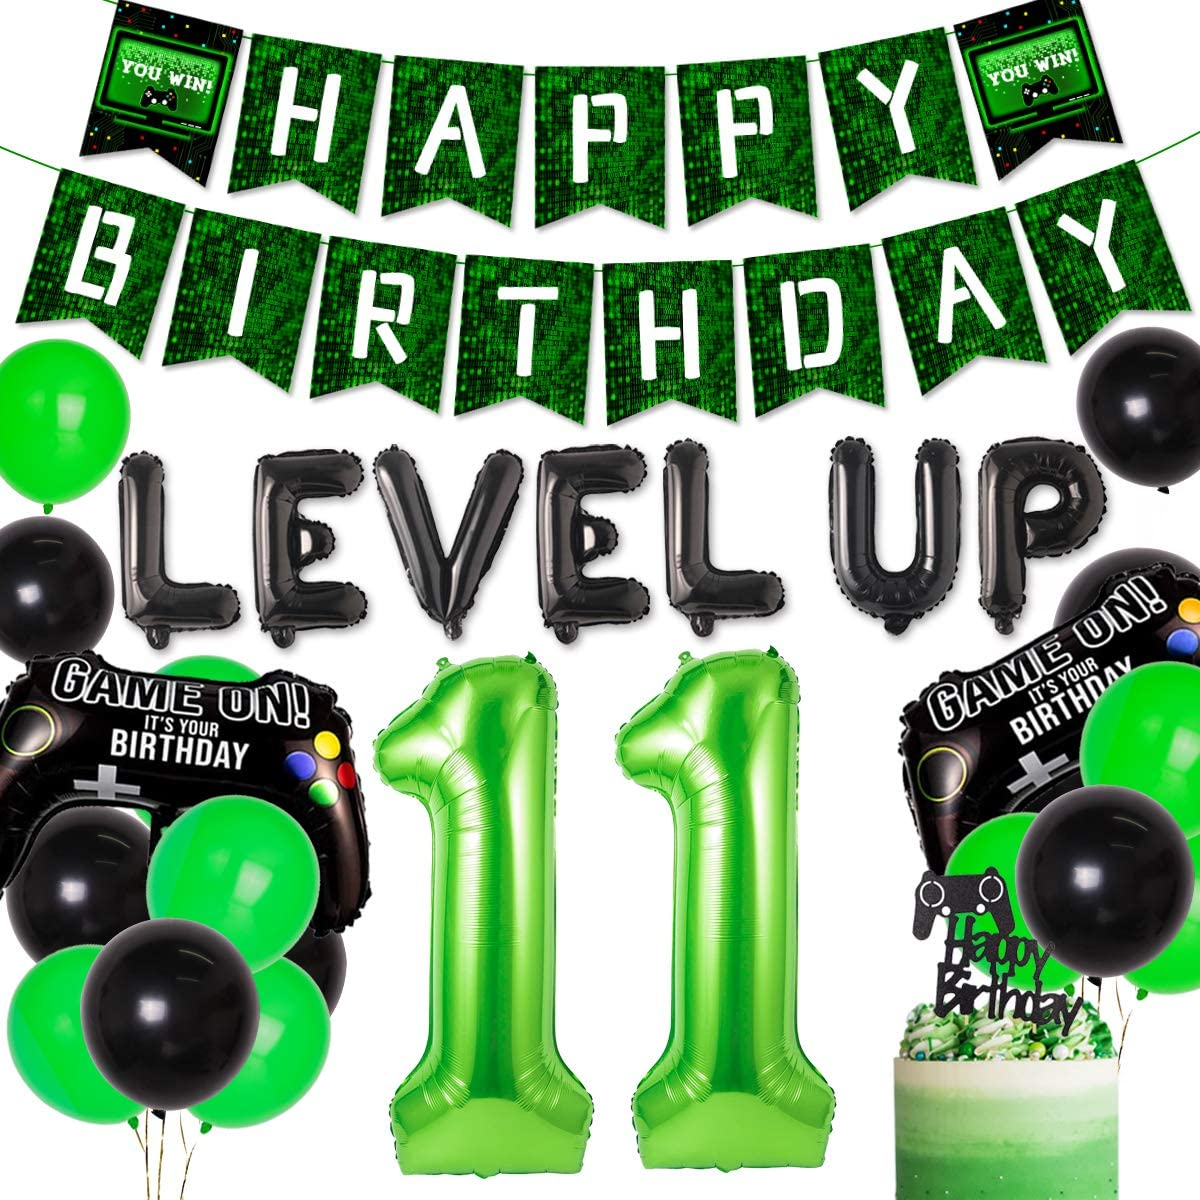 Video Game Party Supplies 9th Game Birthday Party Decorations for Kind Boys Girls Game on Birthday Party Supplies for Game Fans Green Gaming Banner Black and Green Balloons Game Controller Balloons